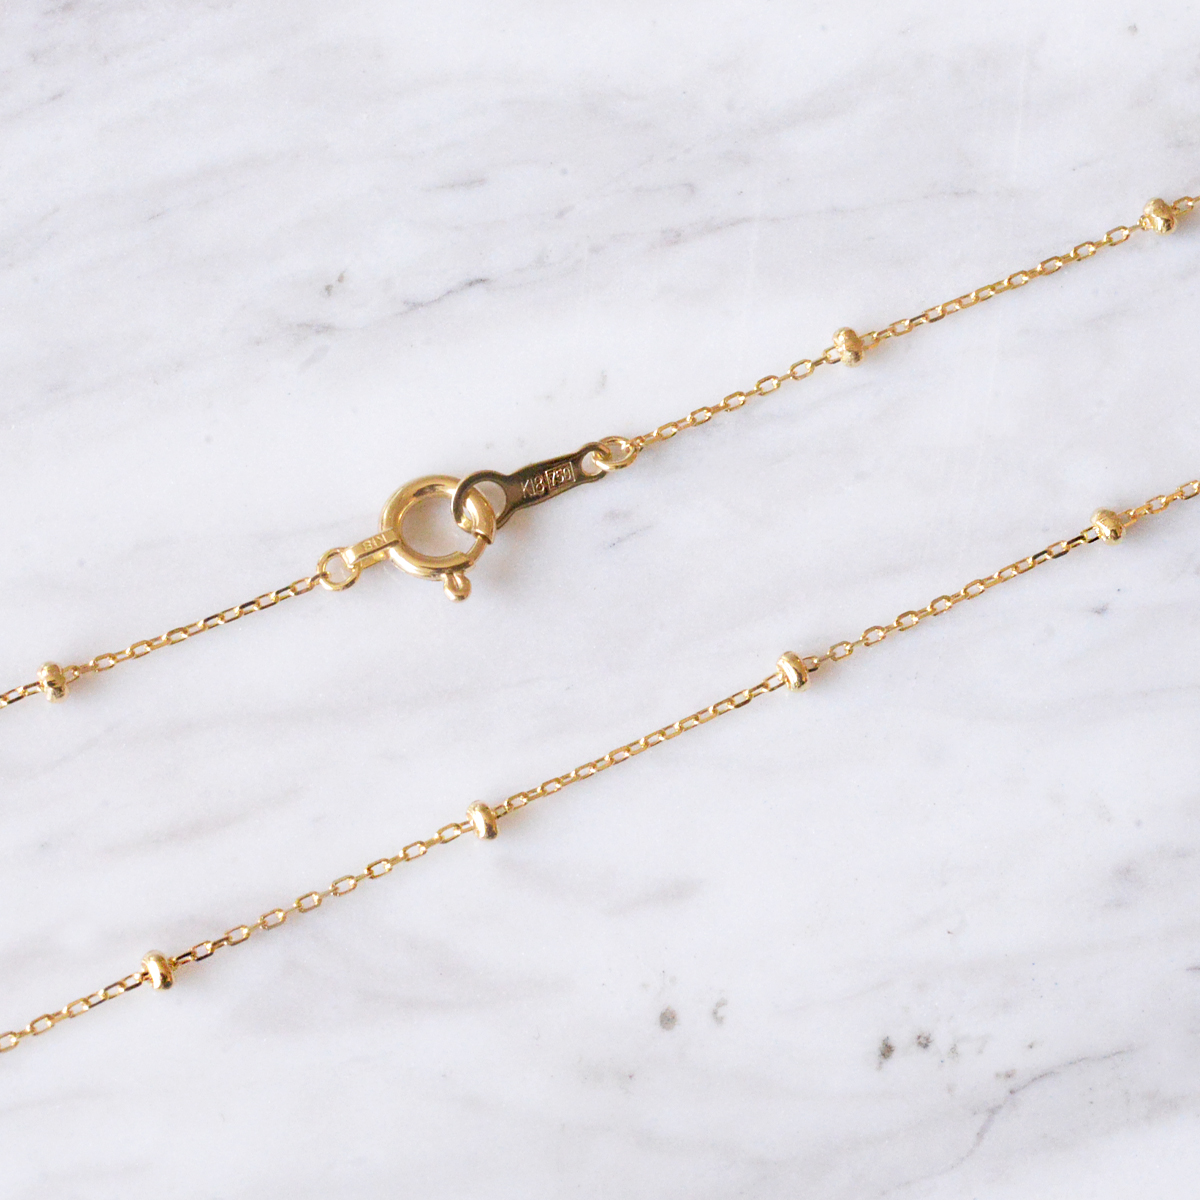 k18ネックレス K18 イエローゴールド スタッド アズキチェーン 幅1.7mm チェーン 40cm/ プレゼント ギフト gold necklace ach1663c40